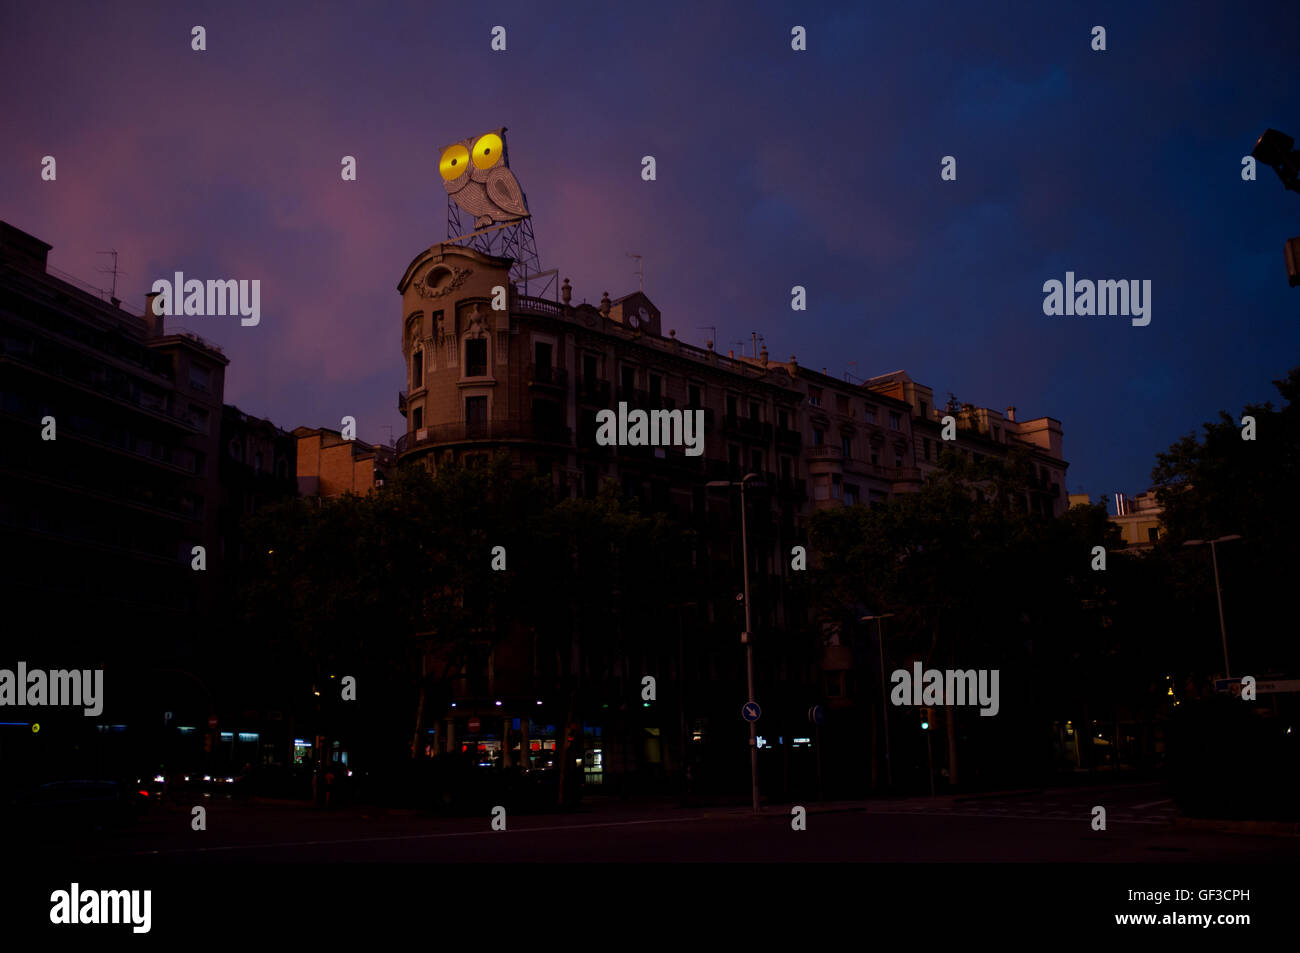 El Mussol (The Owl in catalan), an ancient ad sign, rests atop of a building of the Eixample distrcit of Barcelona. - Stock Image